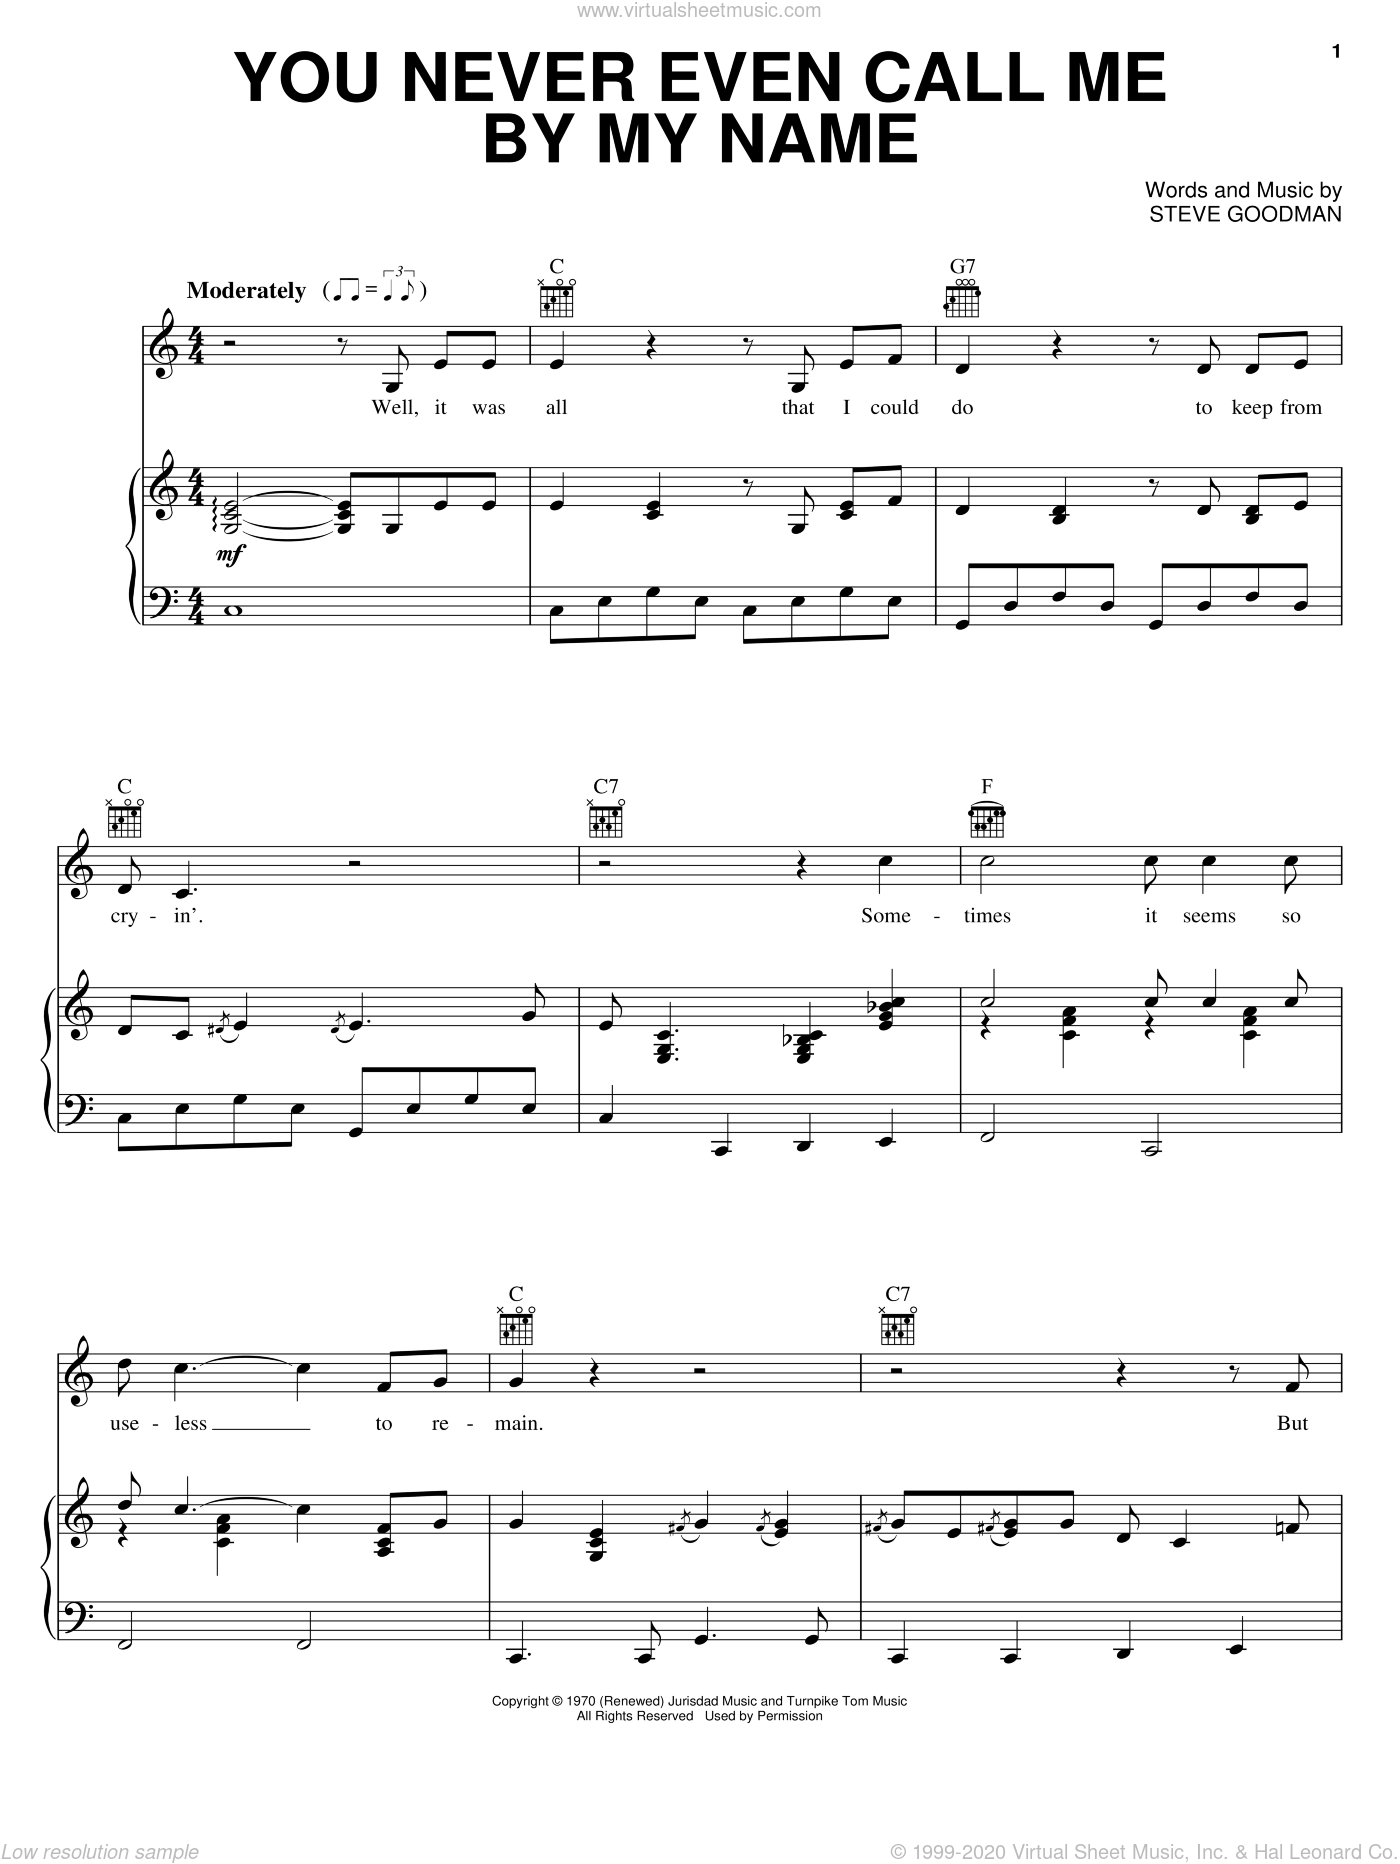 You Never Even Call Me By My Name sheet music for voice, piano or guitar by David Allan Coe and Steve Goodman, intermediate skill level